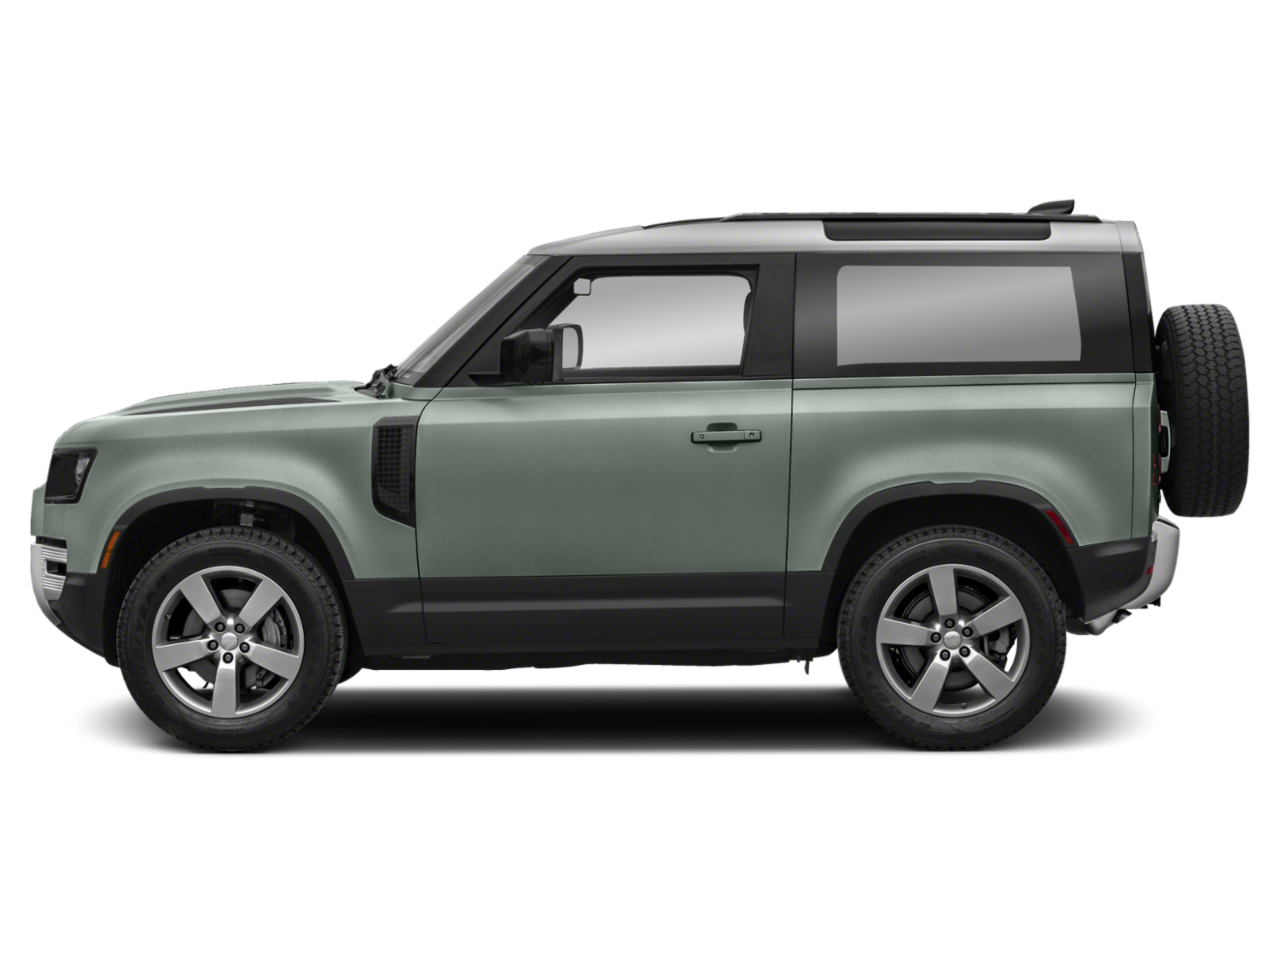 2020 Land Rover Defender 90 First Edition AWD